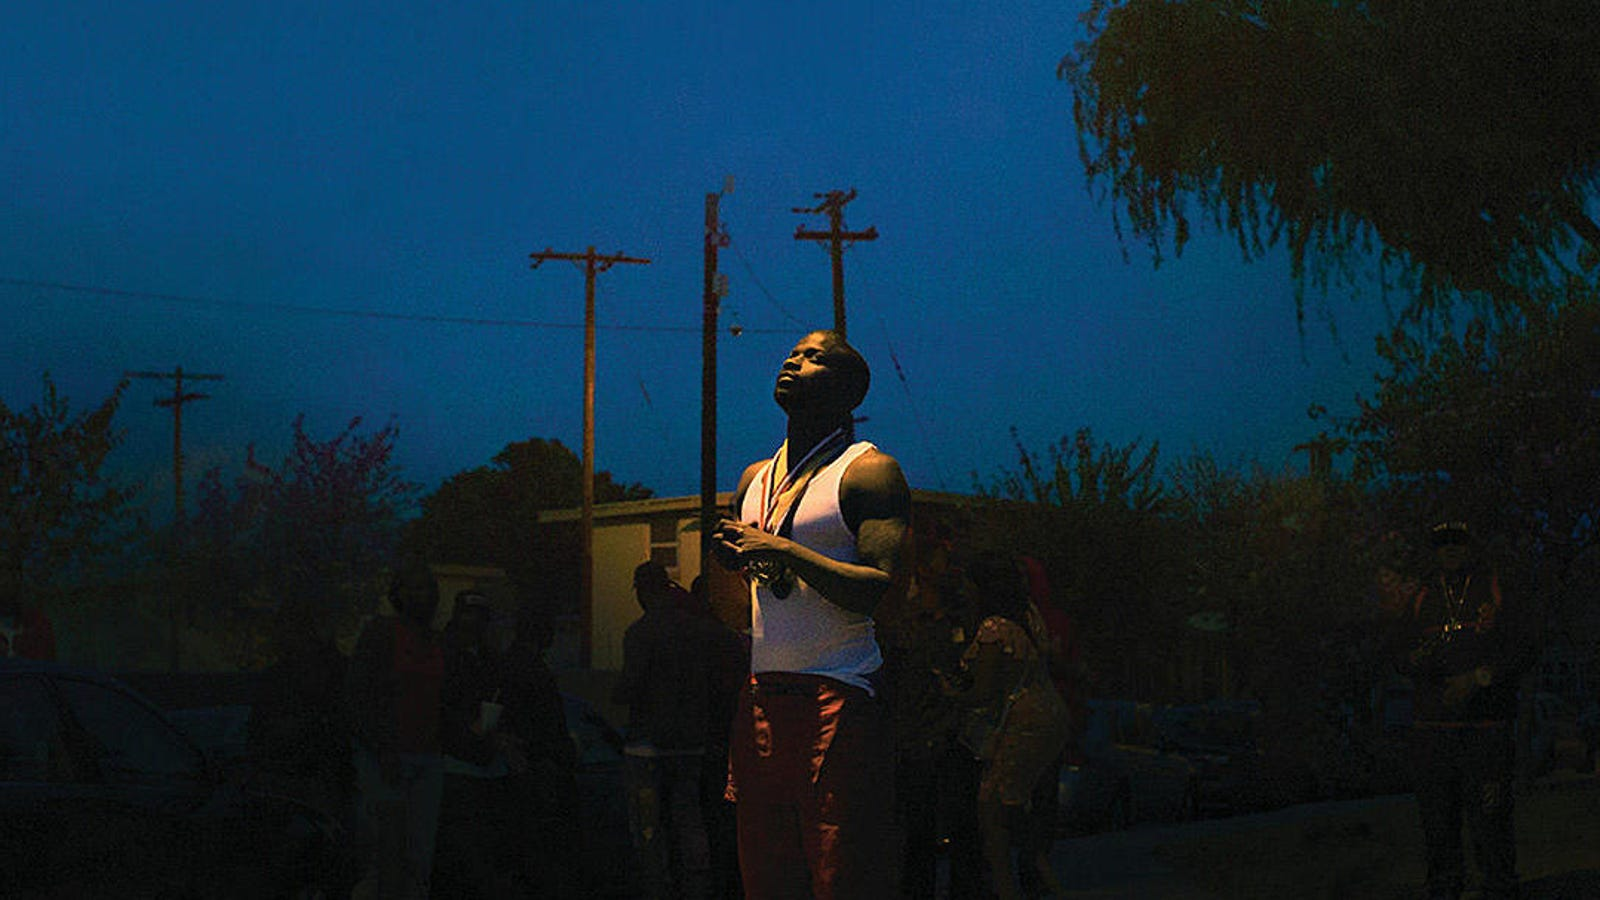 Don't let the preposterous flood of major rap releases make you forget Jay Rock